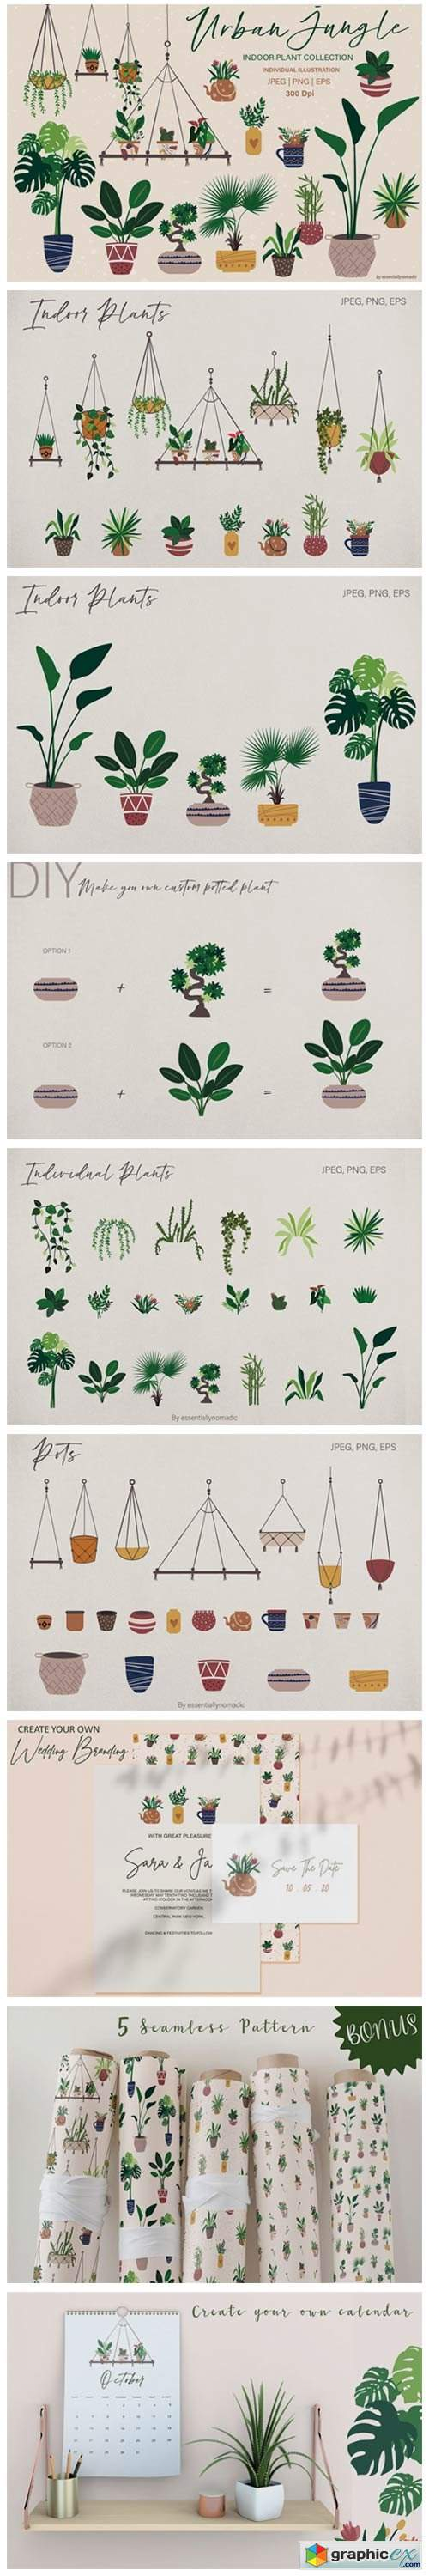 Hand Drawn Botanical Plant Illustration